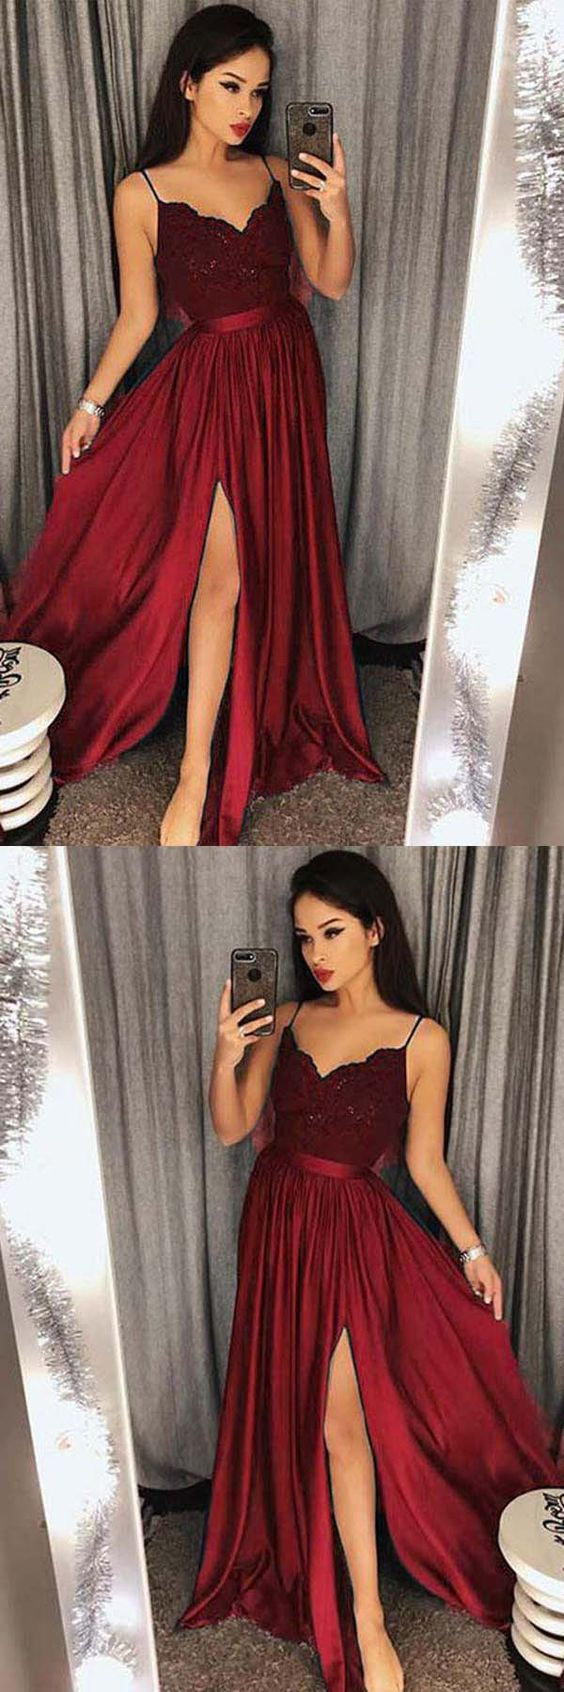 Green Prom Dresses,Burgundy Evening Gowns,Simple Formal Dresses,Prom ...